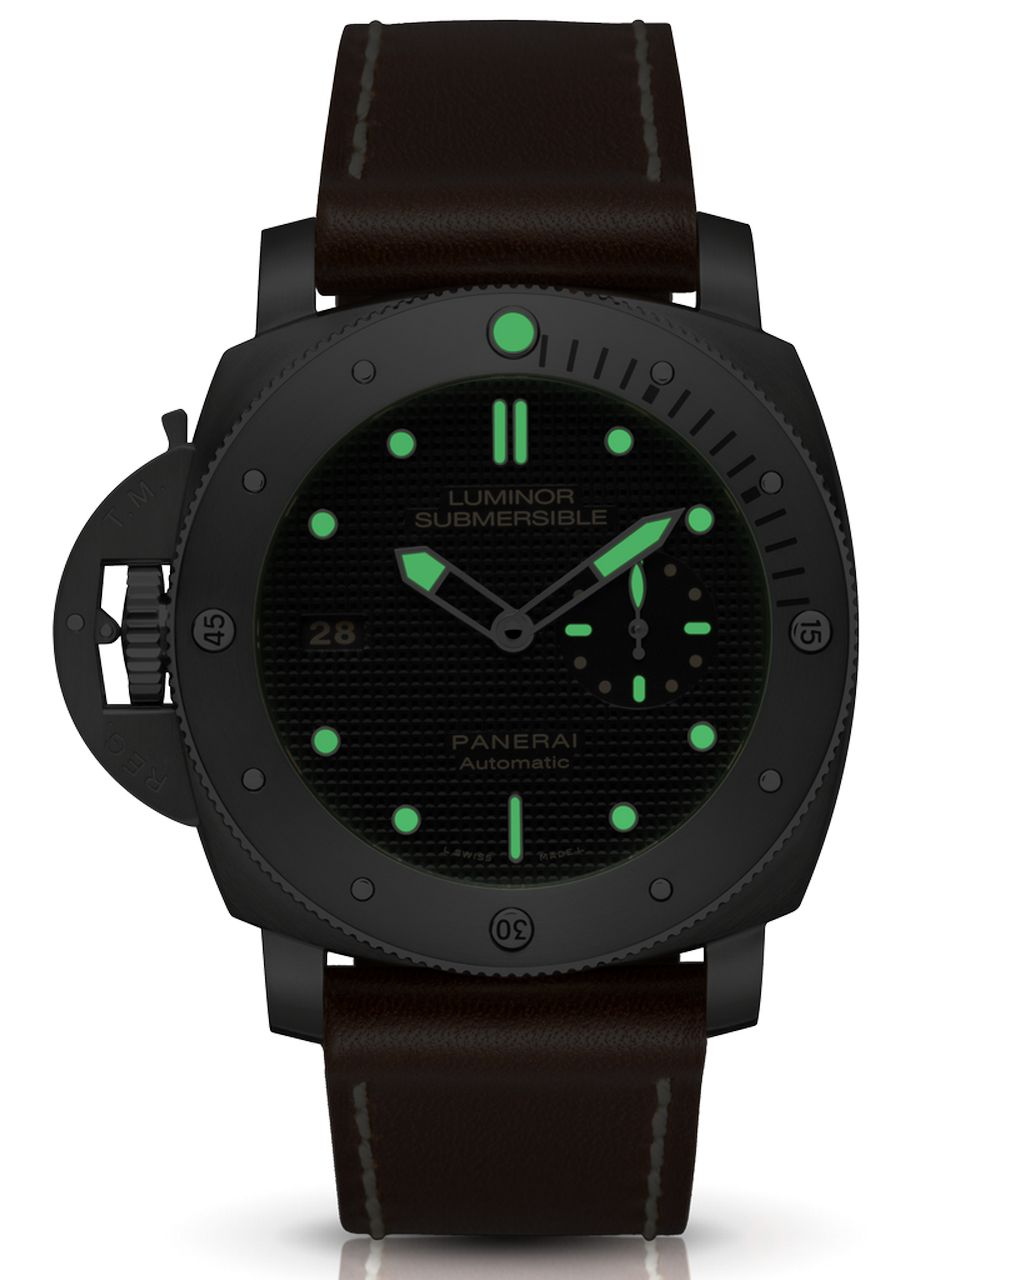 officine-panerai-luminor-submersible-1950-left-handed-3-days-automatic-titanio-ref-pam00569-limited-edition-0-100_4